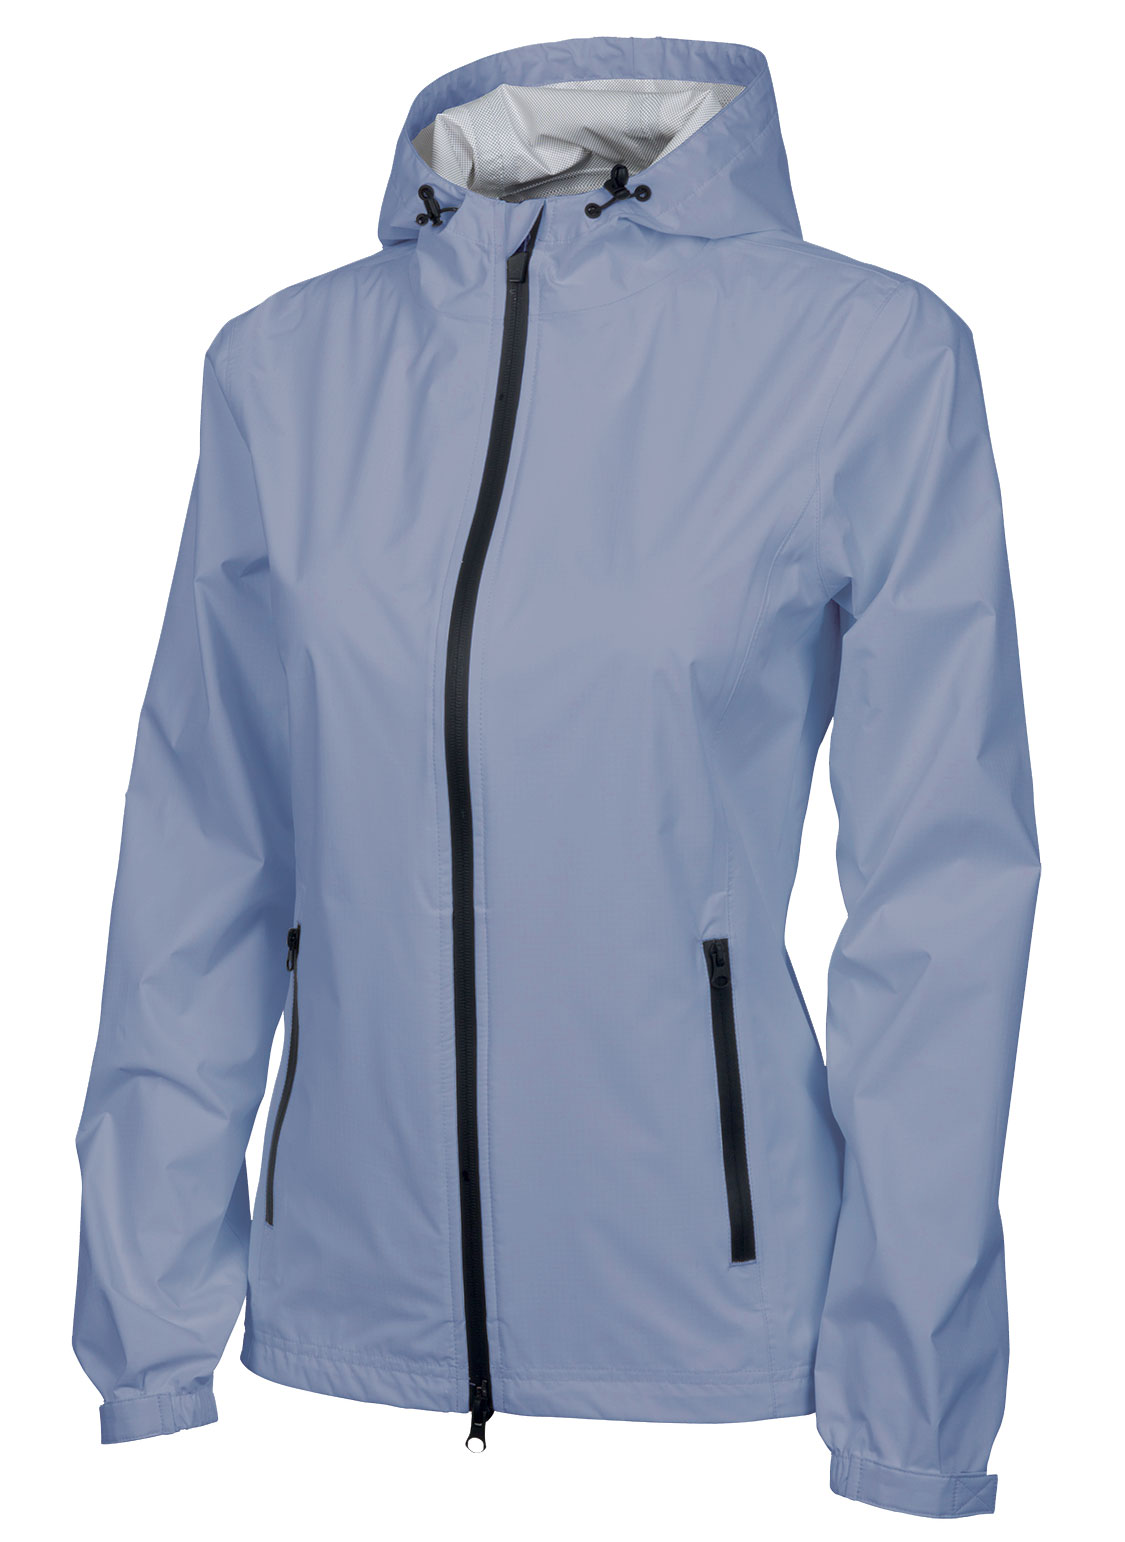 Charles River Womens Watertown Rain Jacket